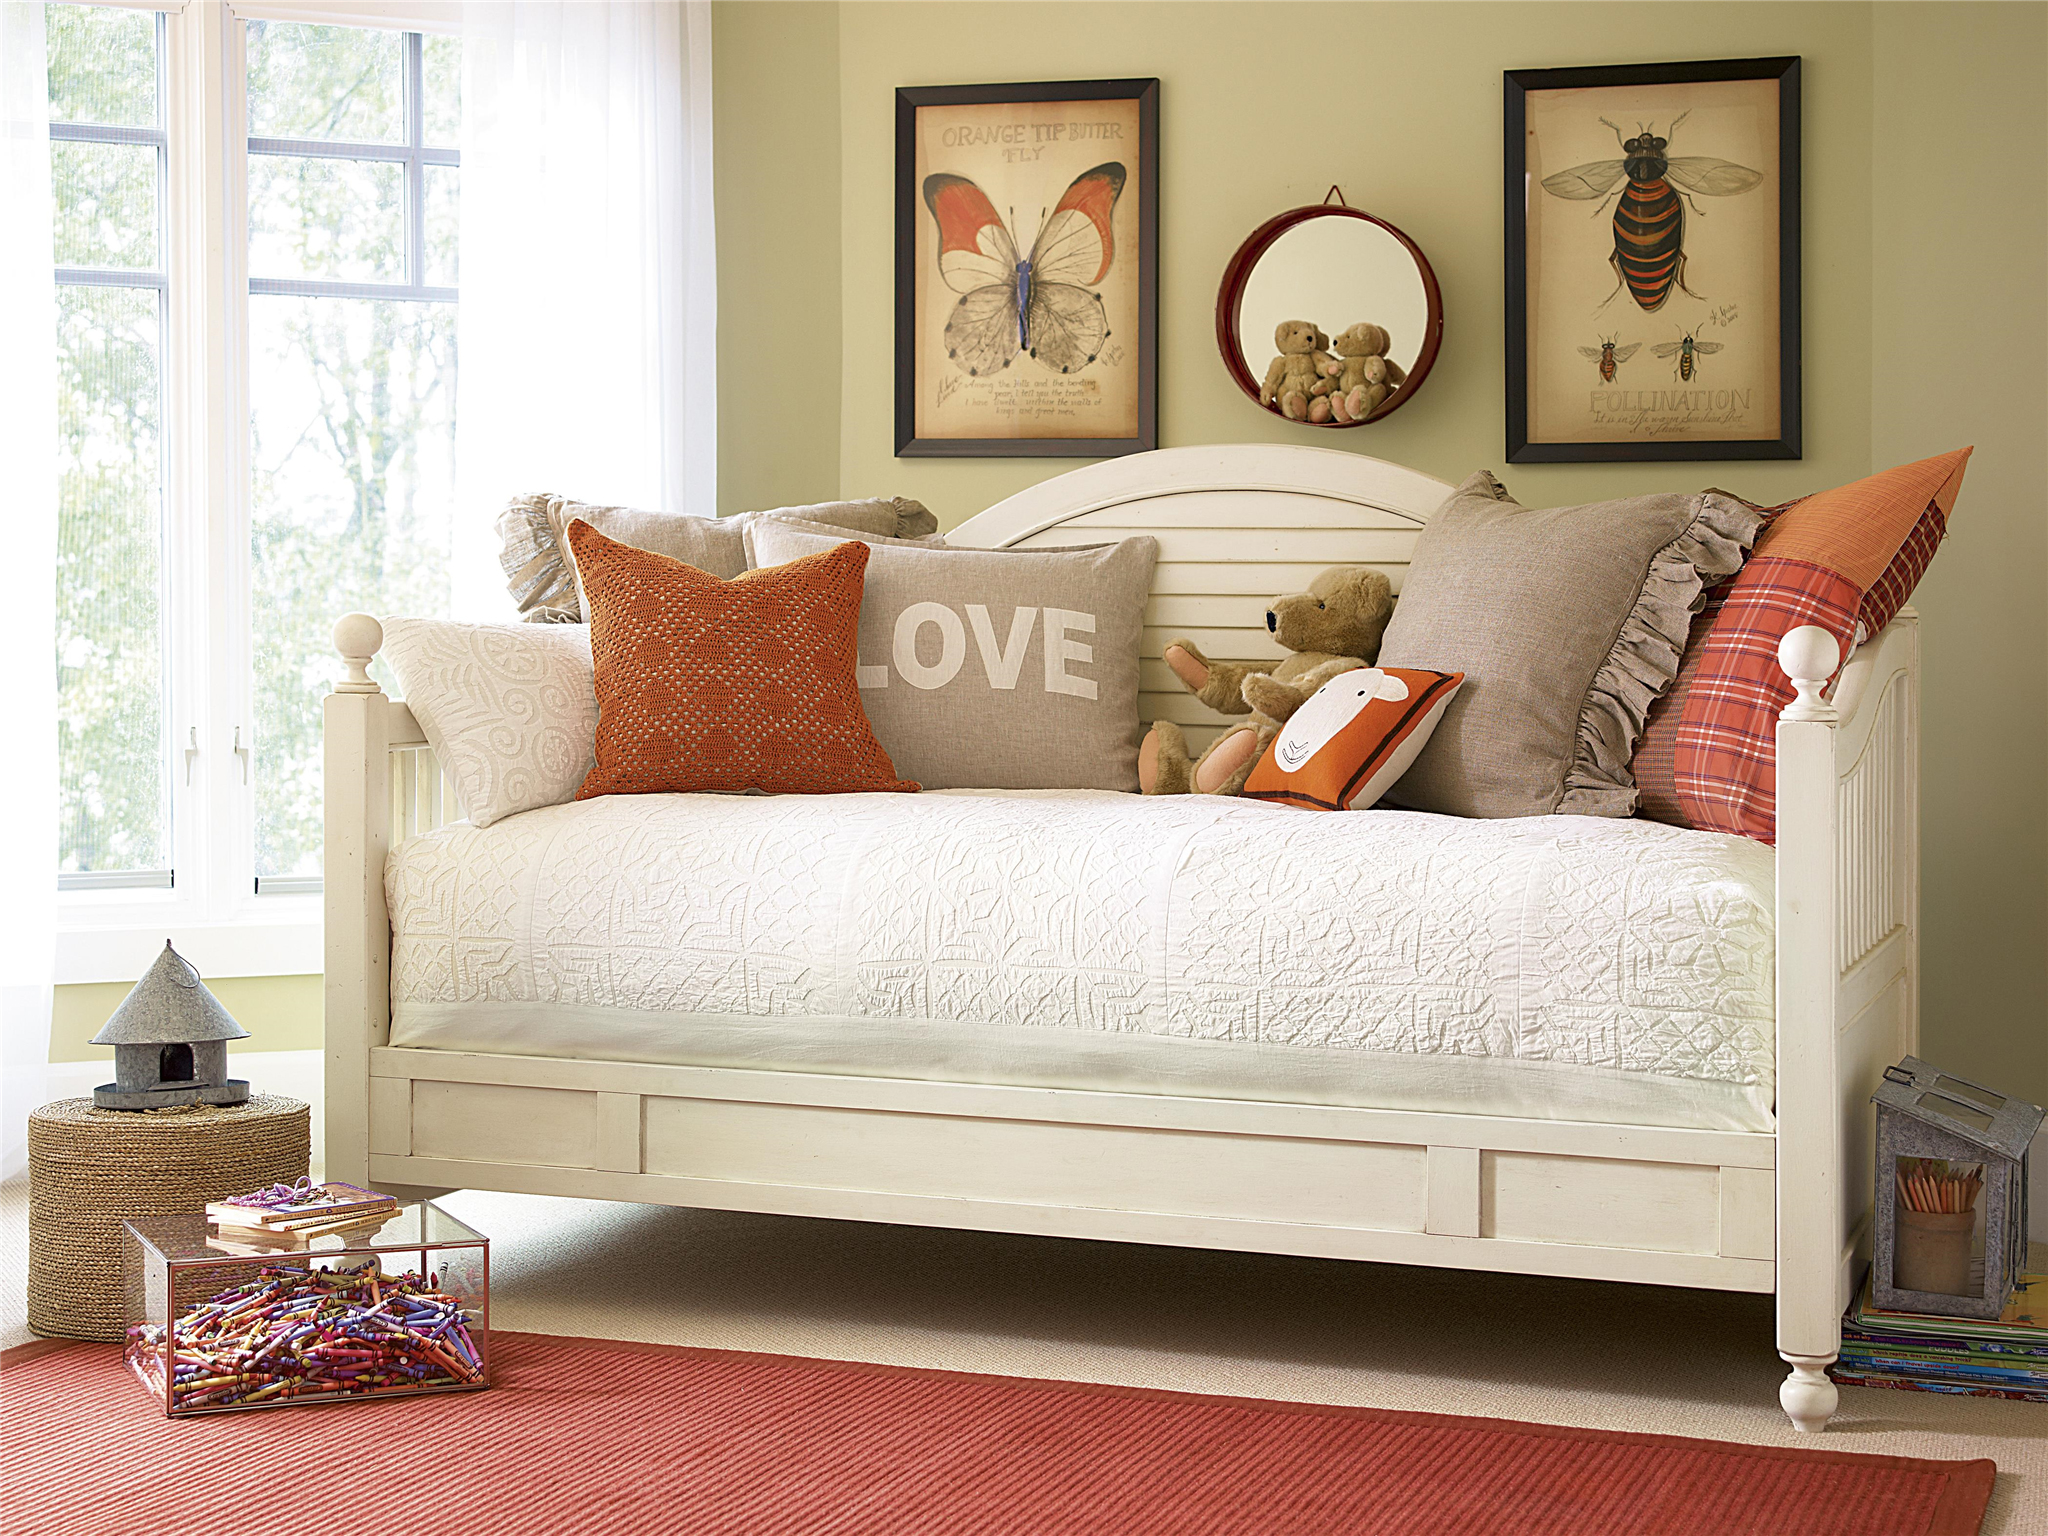 kids daybed 2 PD.jpg